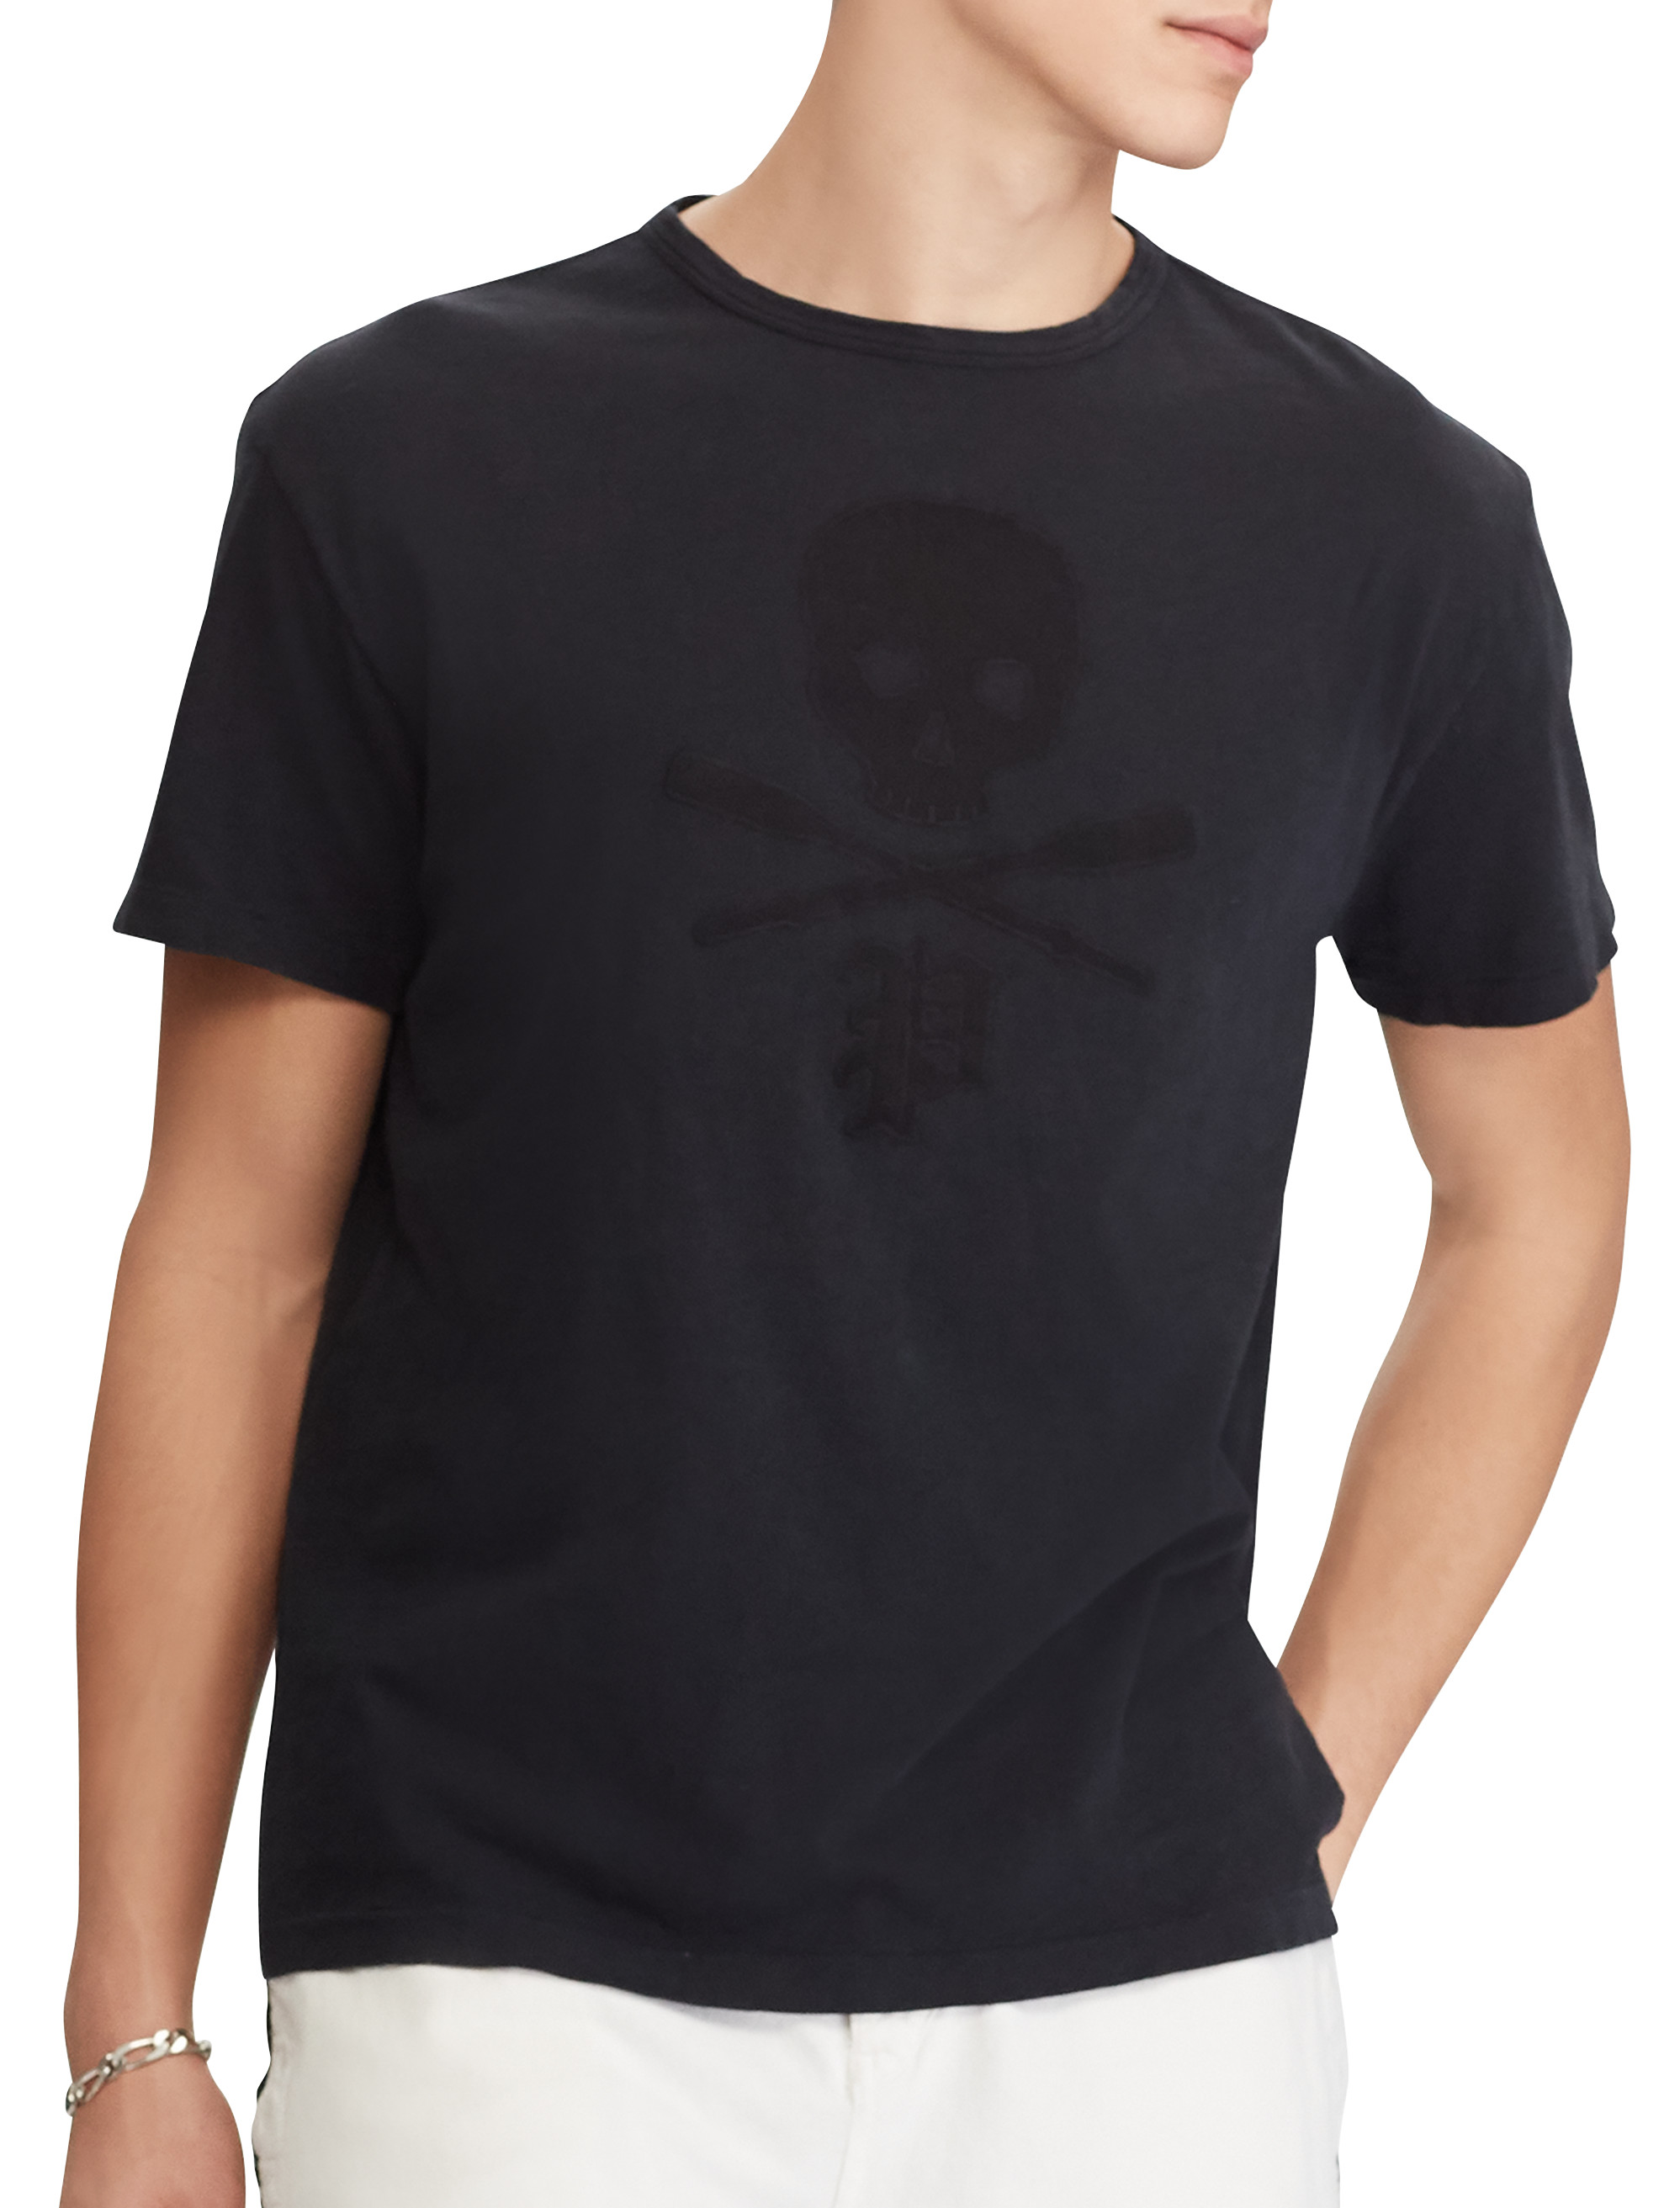 Polo Ralph Lauren Skull And Bones Graphic Tee | Tuggl